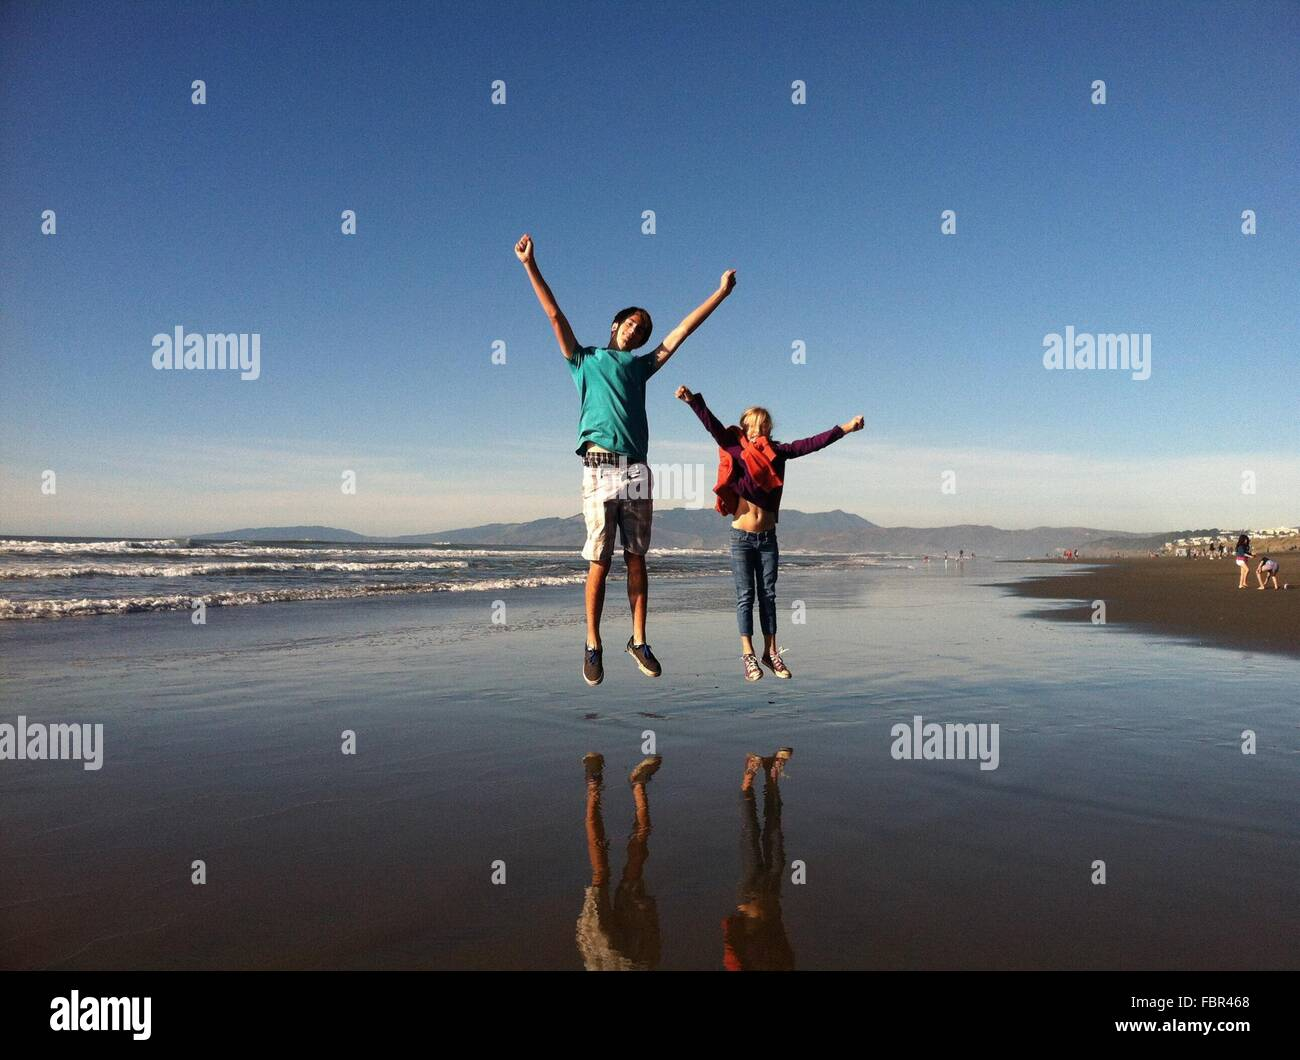 Full Length Of Brother And Sister Jumping At Beach - Stock Image